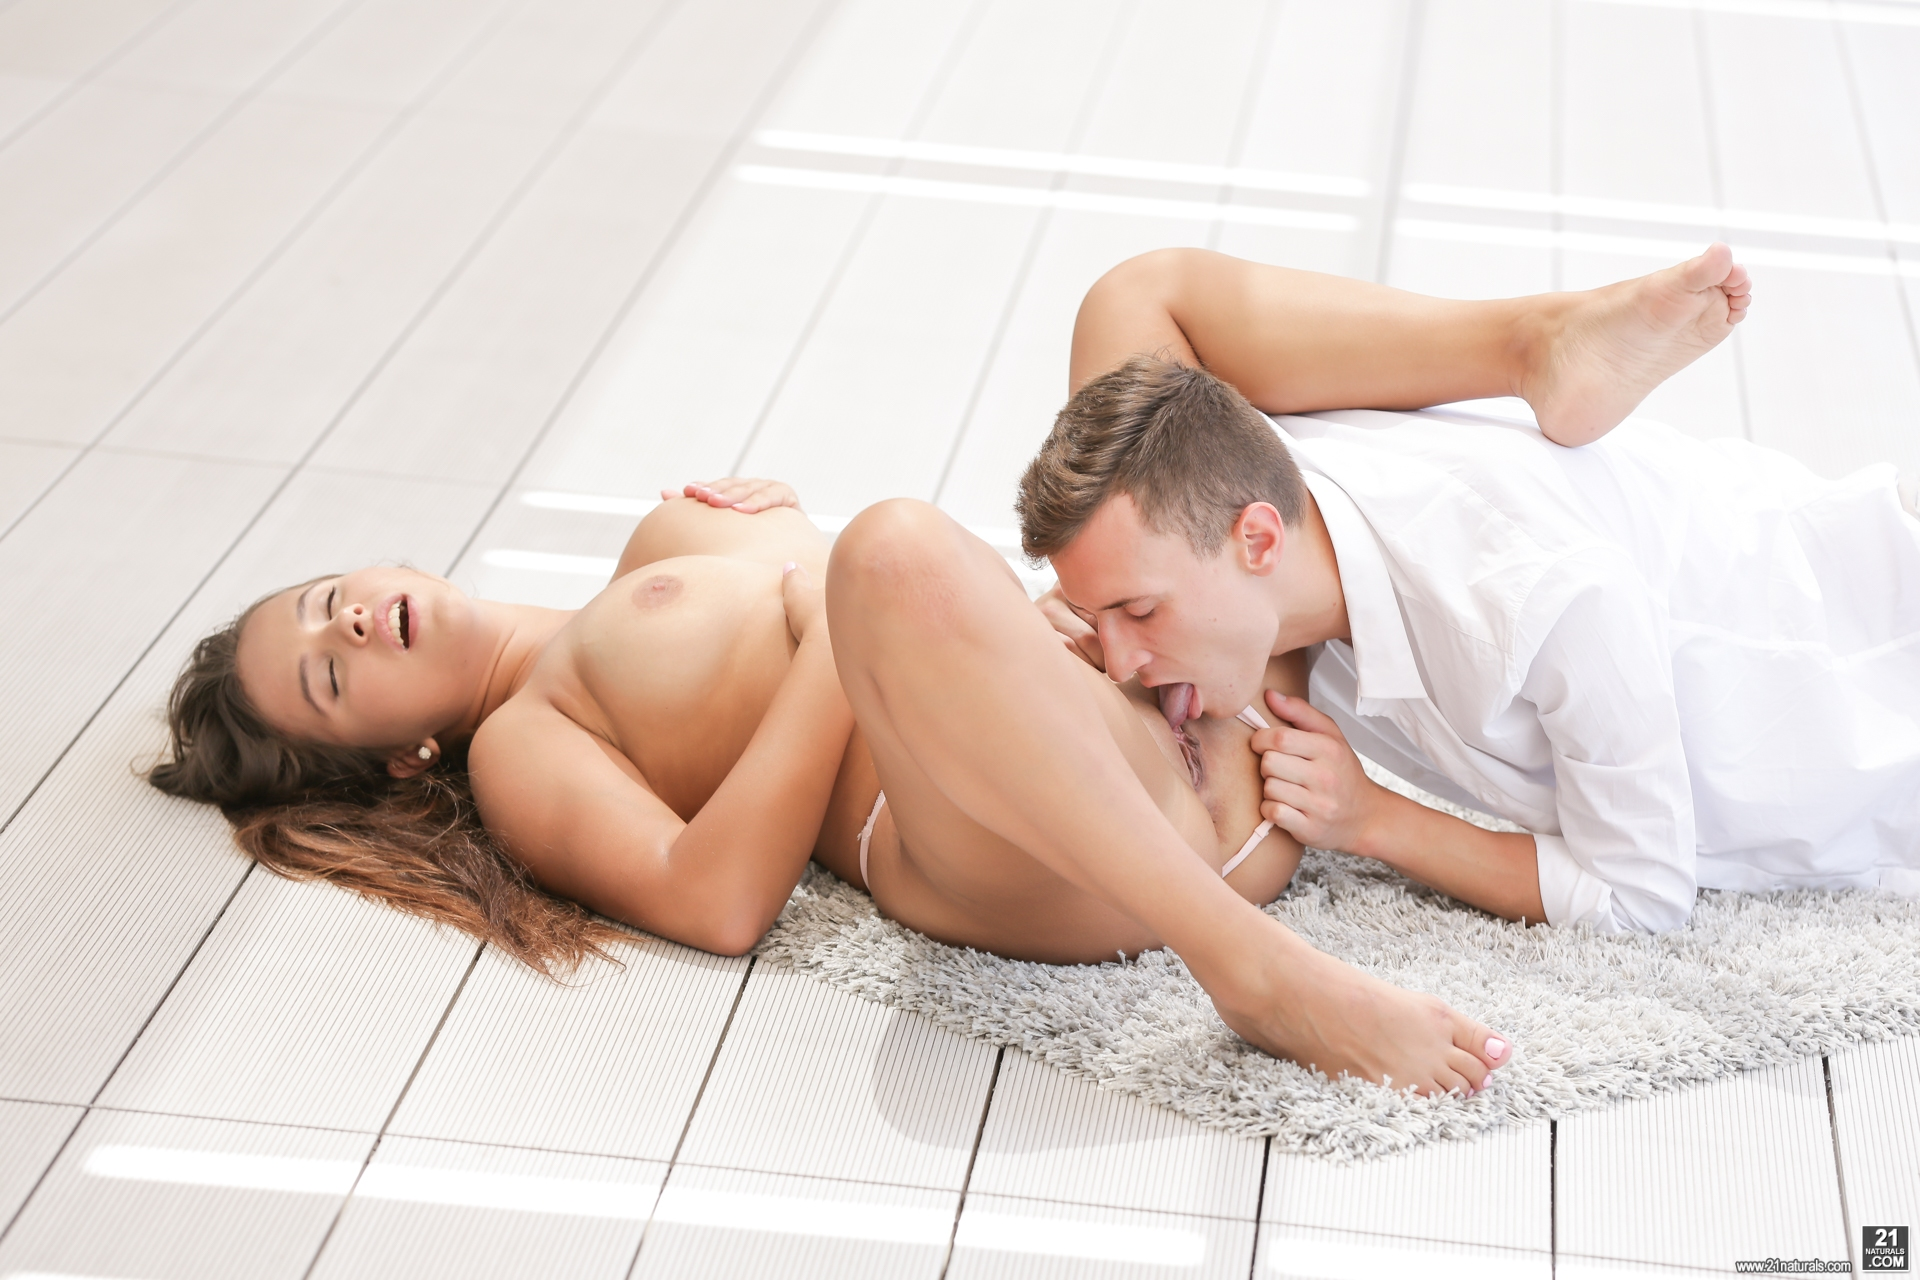 beautiful teen girl with tanlines enjoys her first truly hard sex with a forbidden lover #5